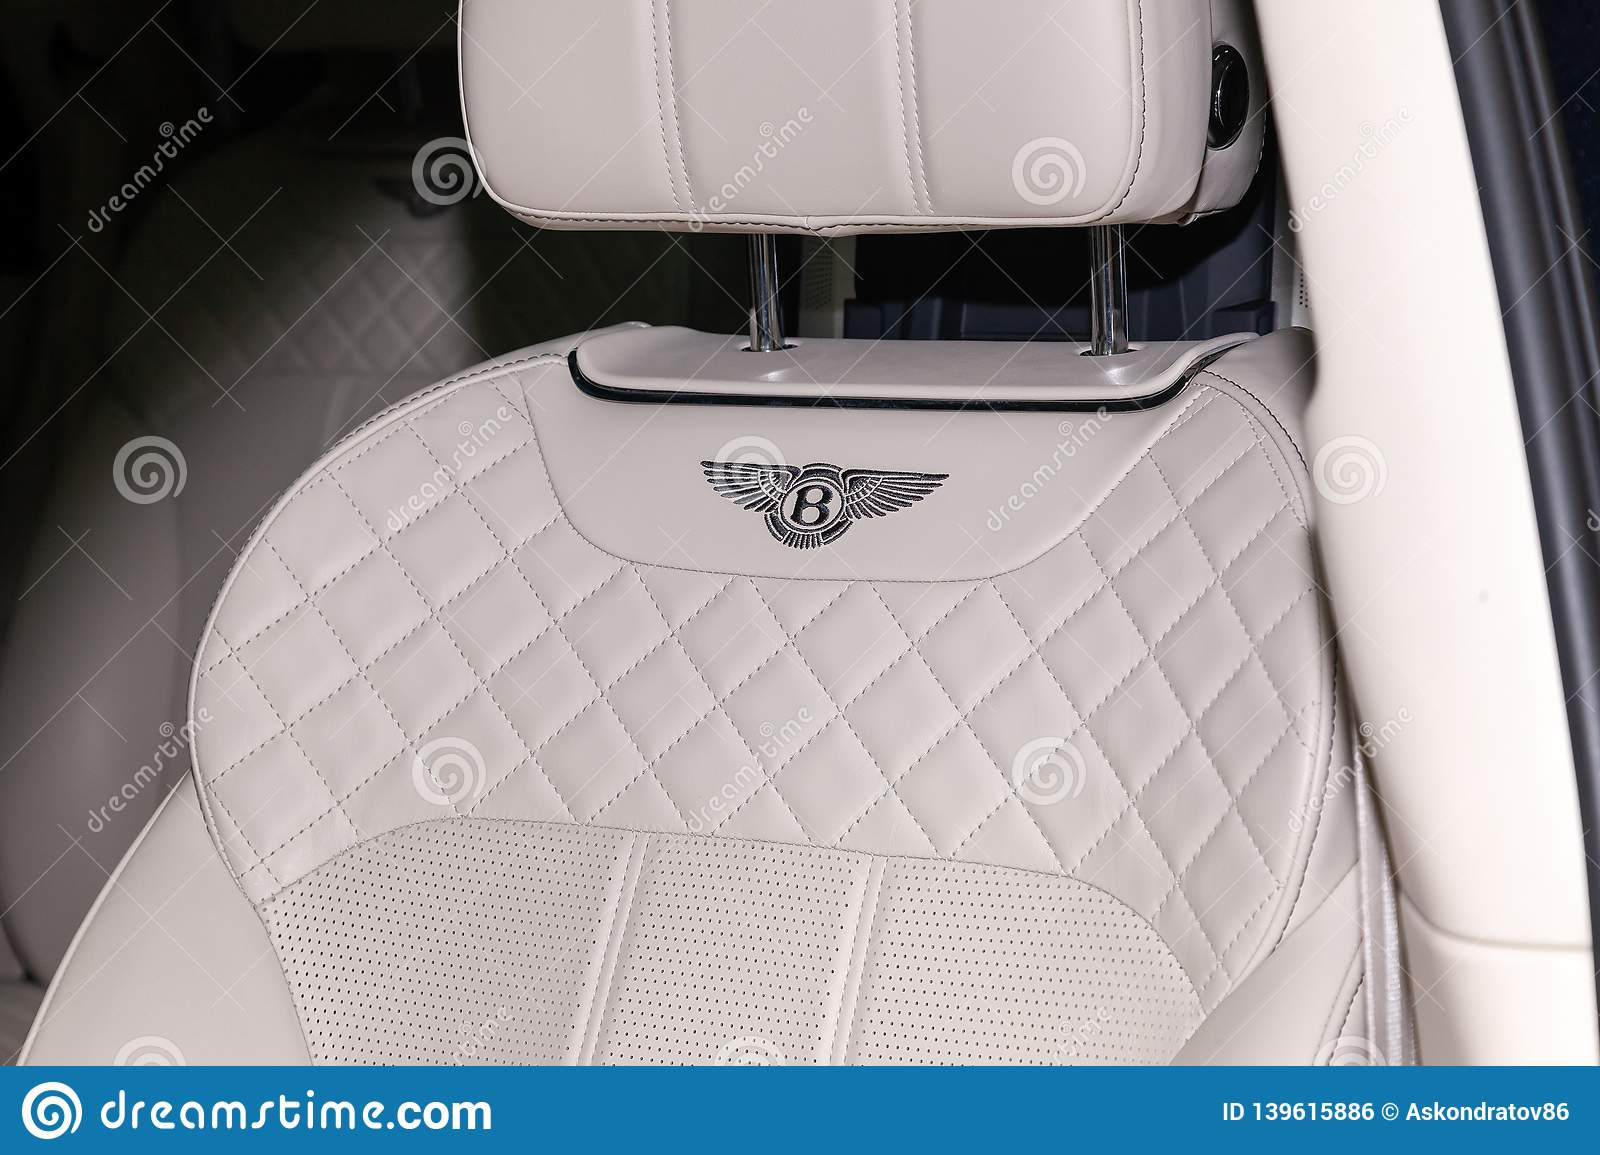 Interior View With Emblem On Steering Wheel Of Luxury Very Expensive New Black Bentley Bentayga Car Stands In The Washing Box Editorial Photo Image Of Light Leather 139615886